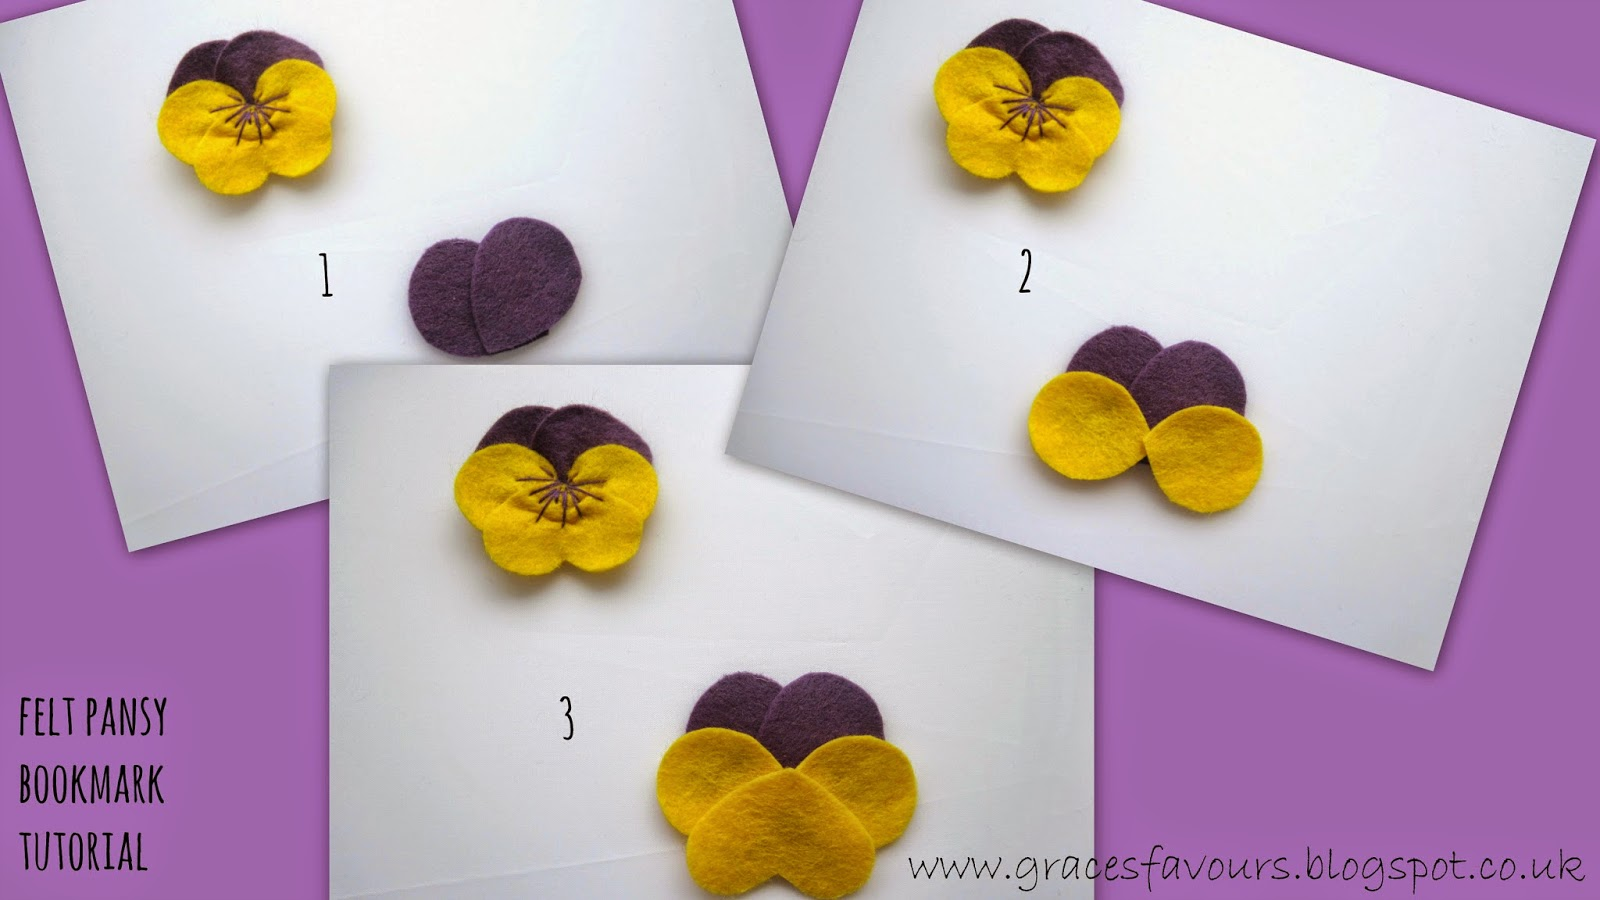 Graces favours craft adventures how to make a felt diy pansy instructions baditri Gallery